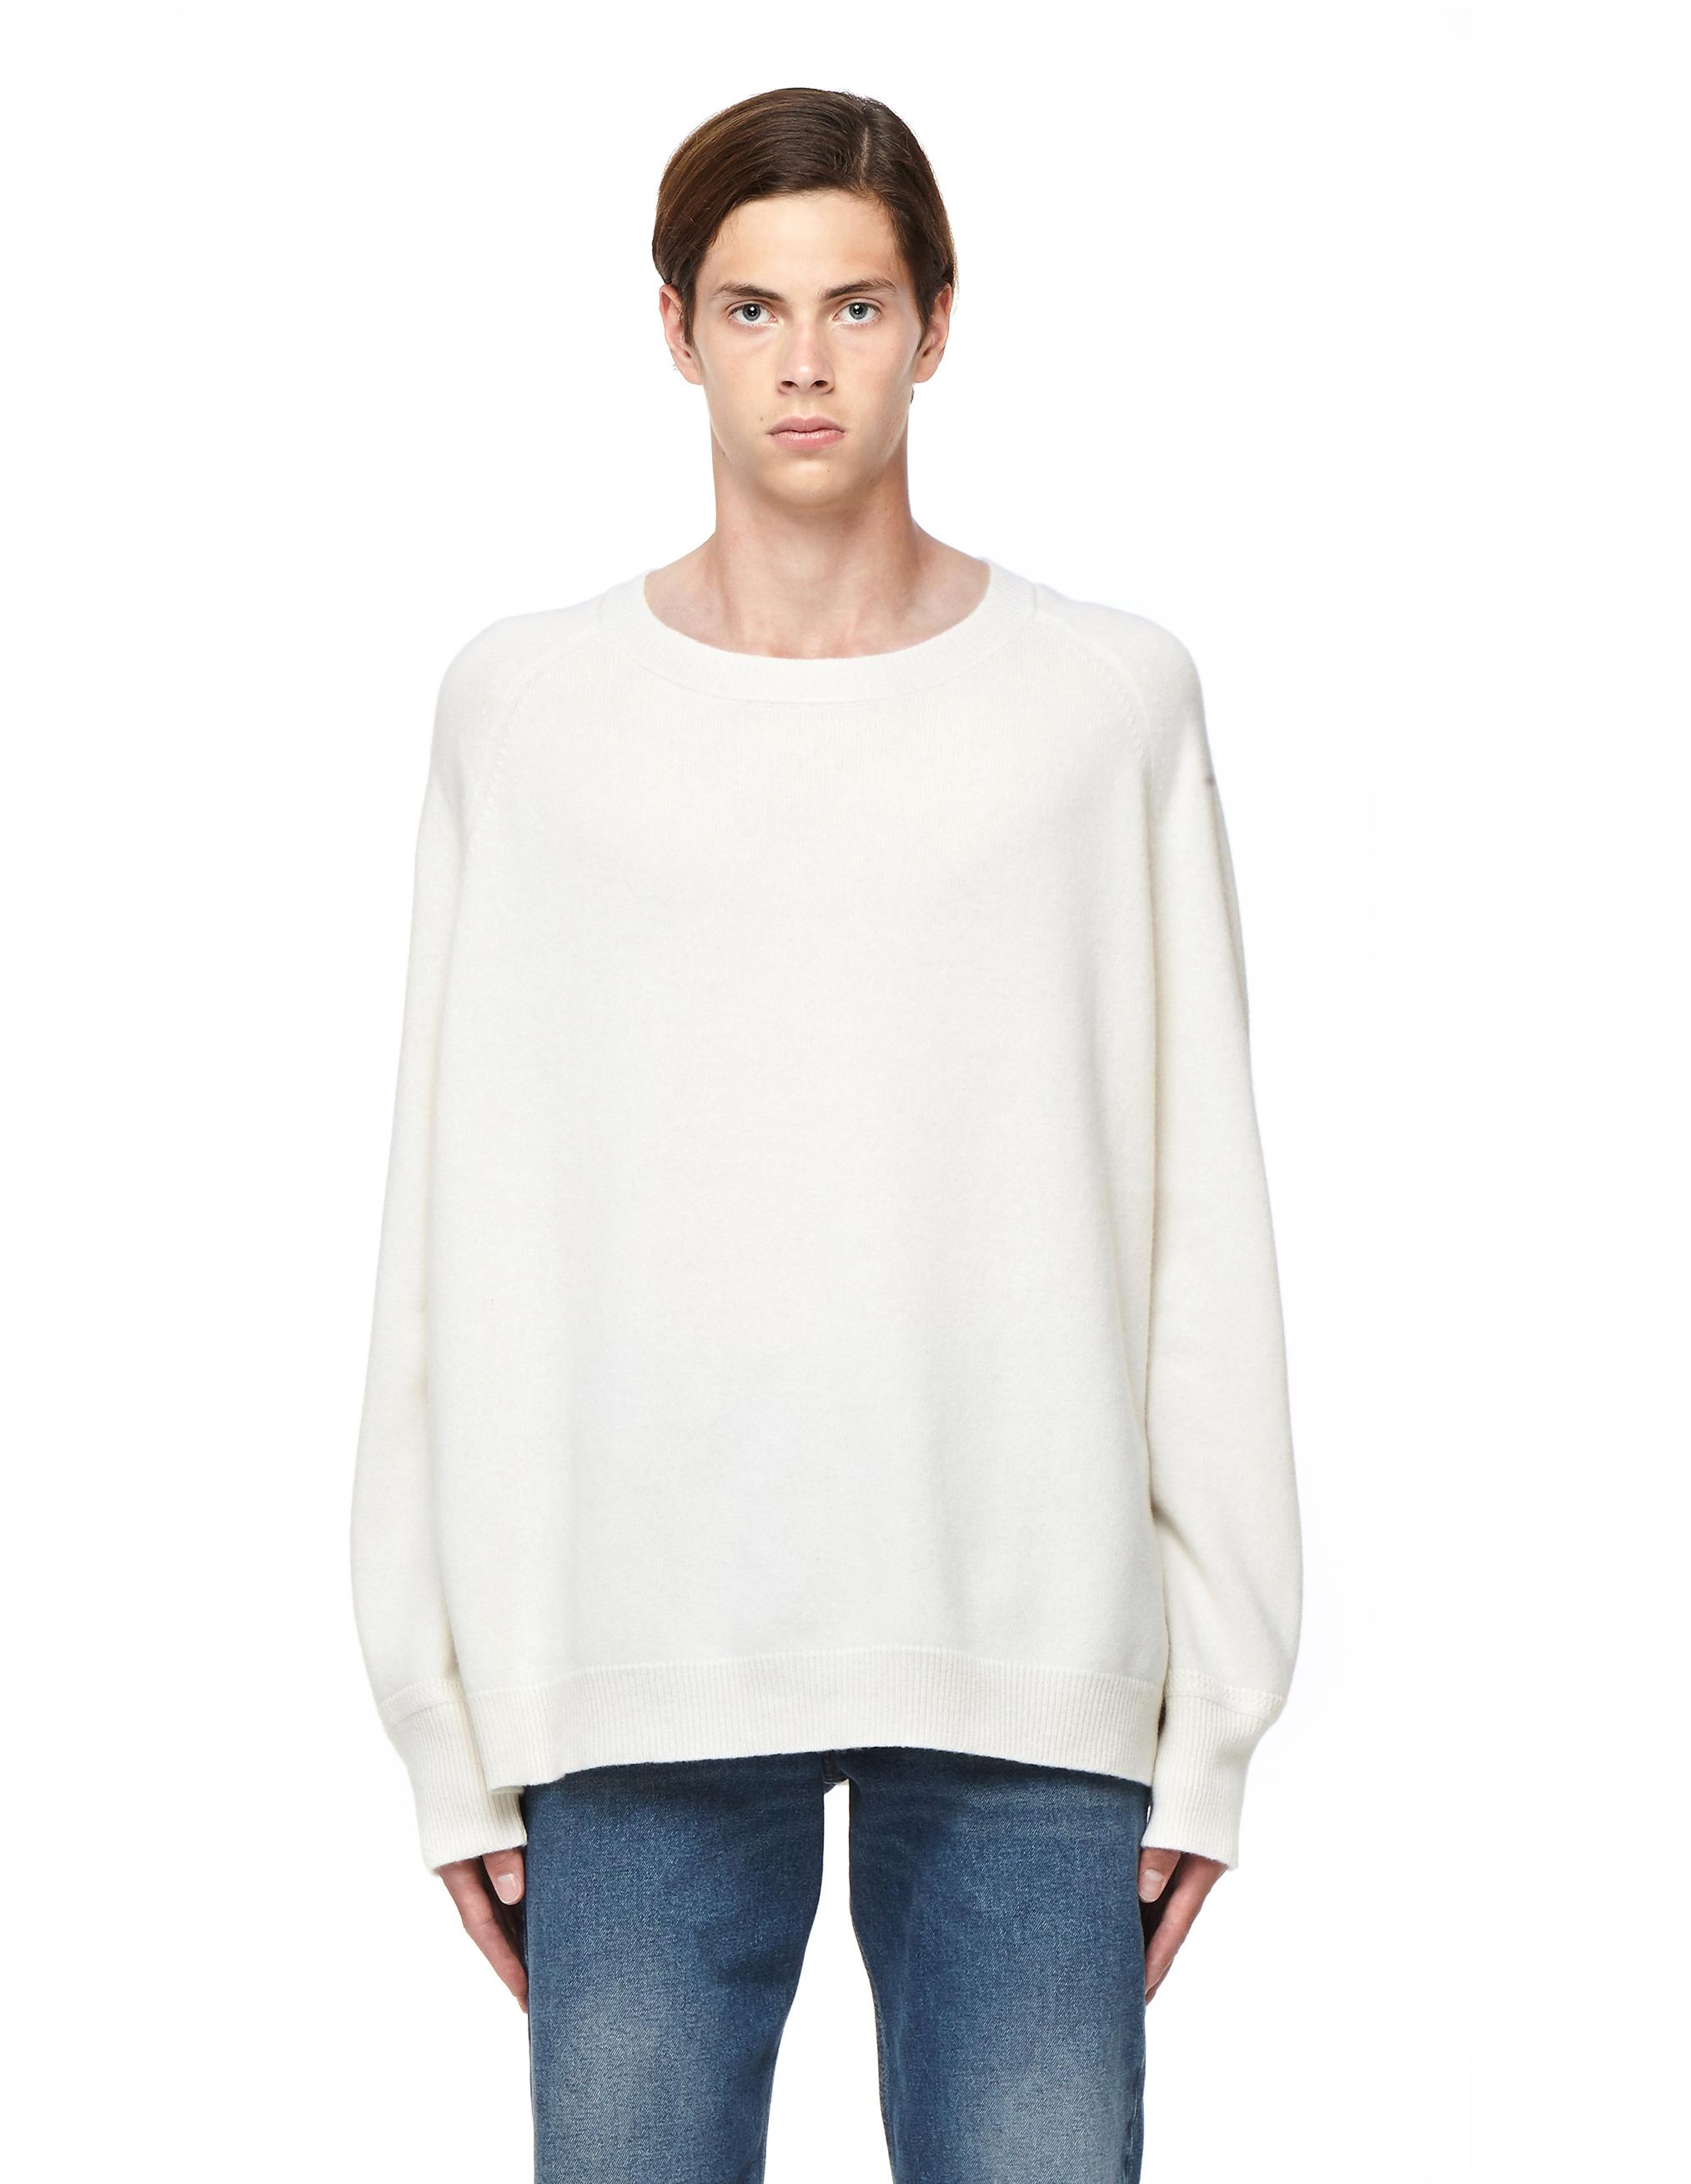 lyst haider ackermann wool sweater in white for men. Black Bedroom Furniture Sets. Home Design Ideas